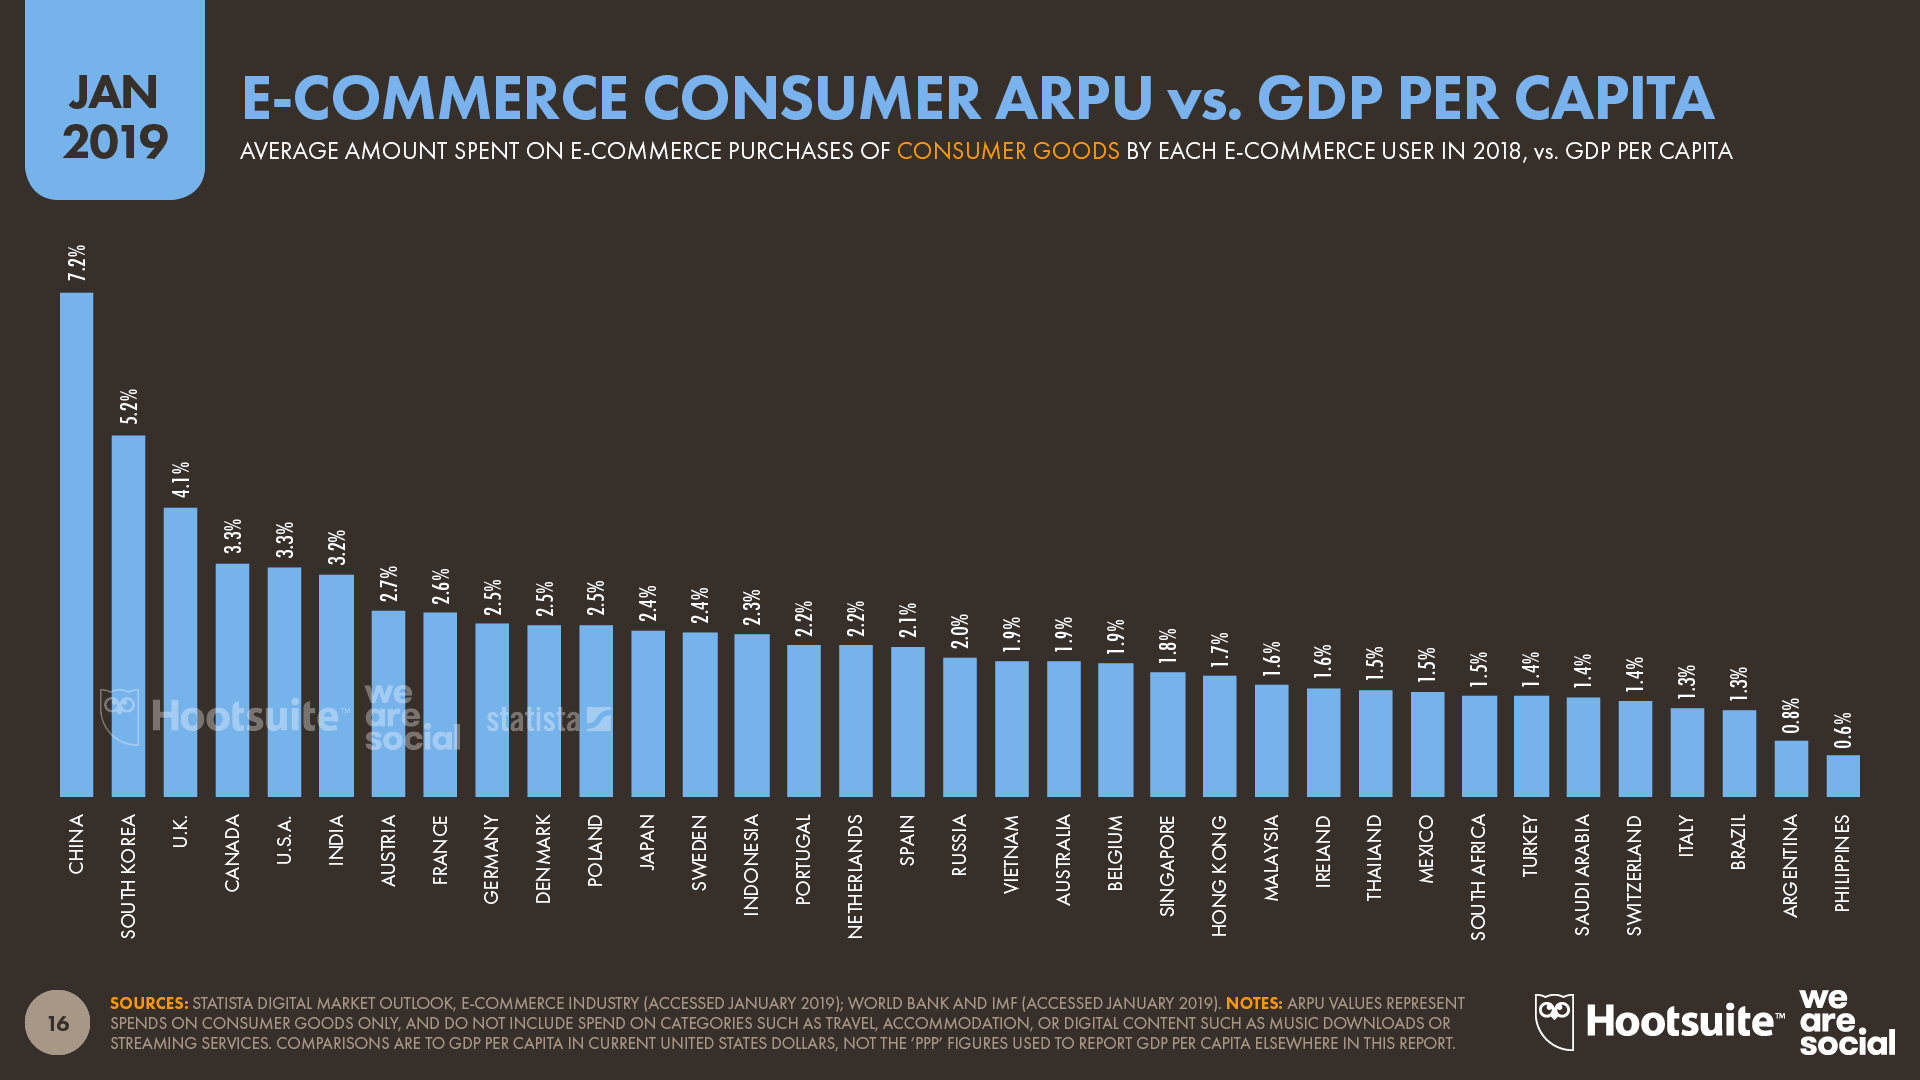 Ecommerce ARPU vs GDP Per Capita by Country January 2019 DataReportal